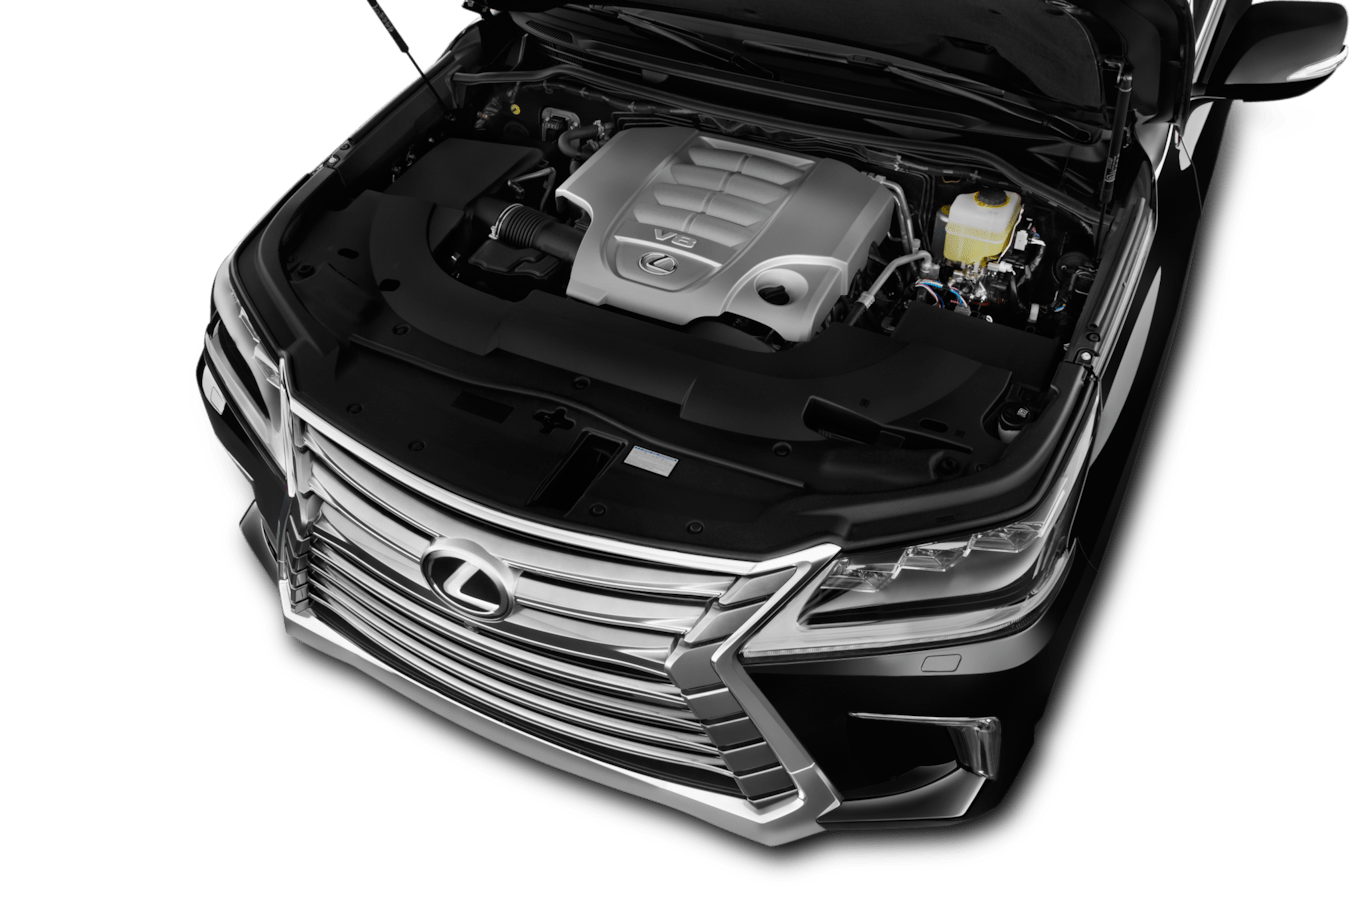 2017 Lexus LX570 Reviews and Rating